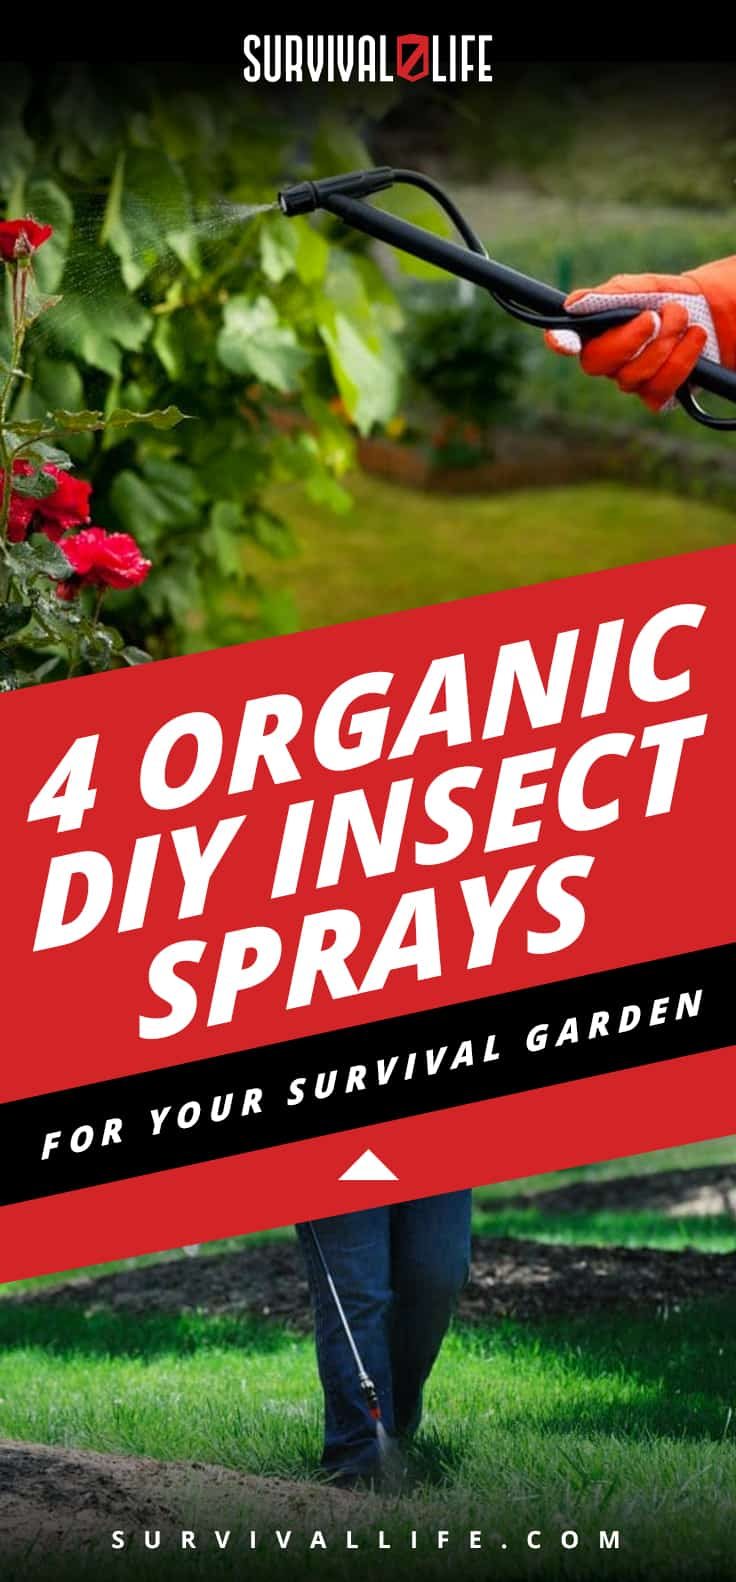 4 Organic DIY Insect Sprays For Your Survival Garden